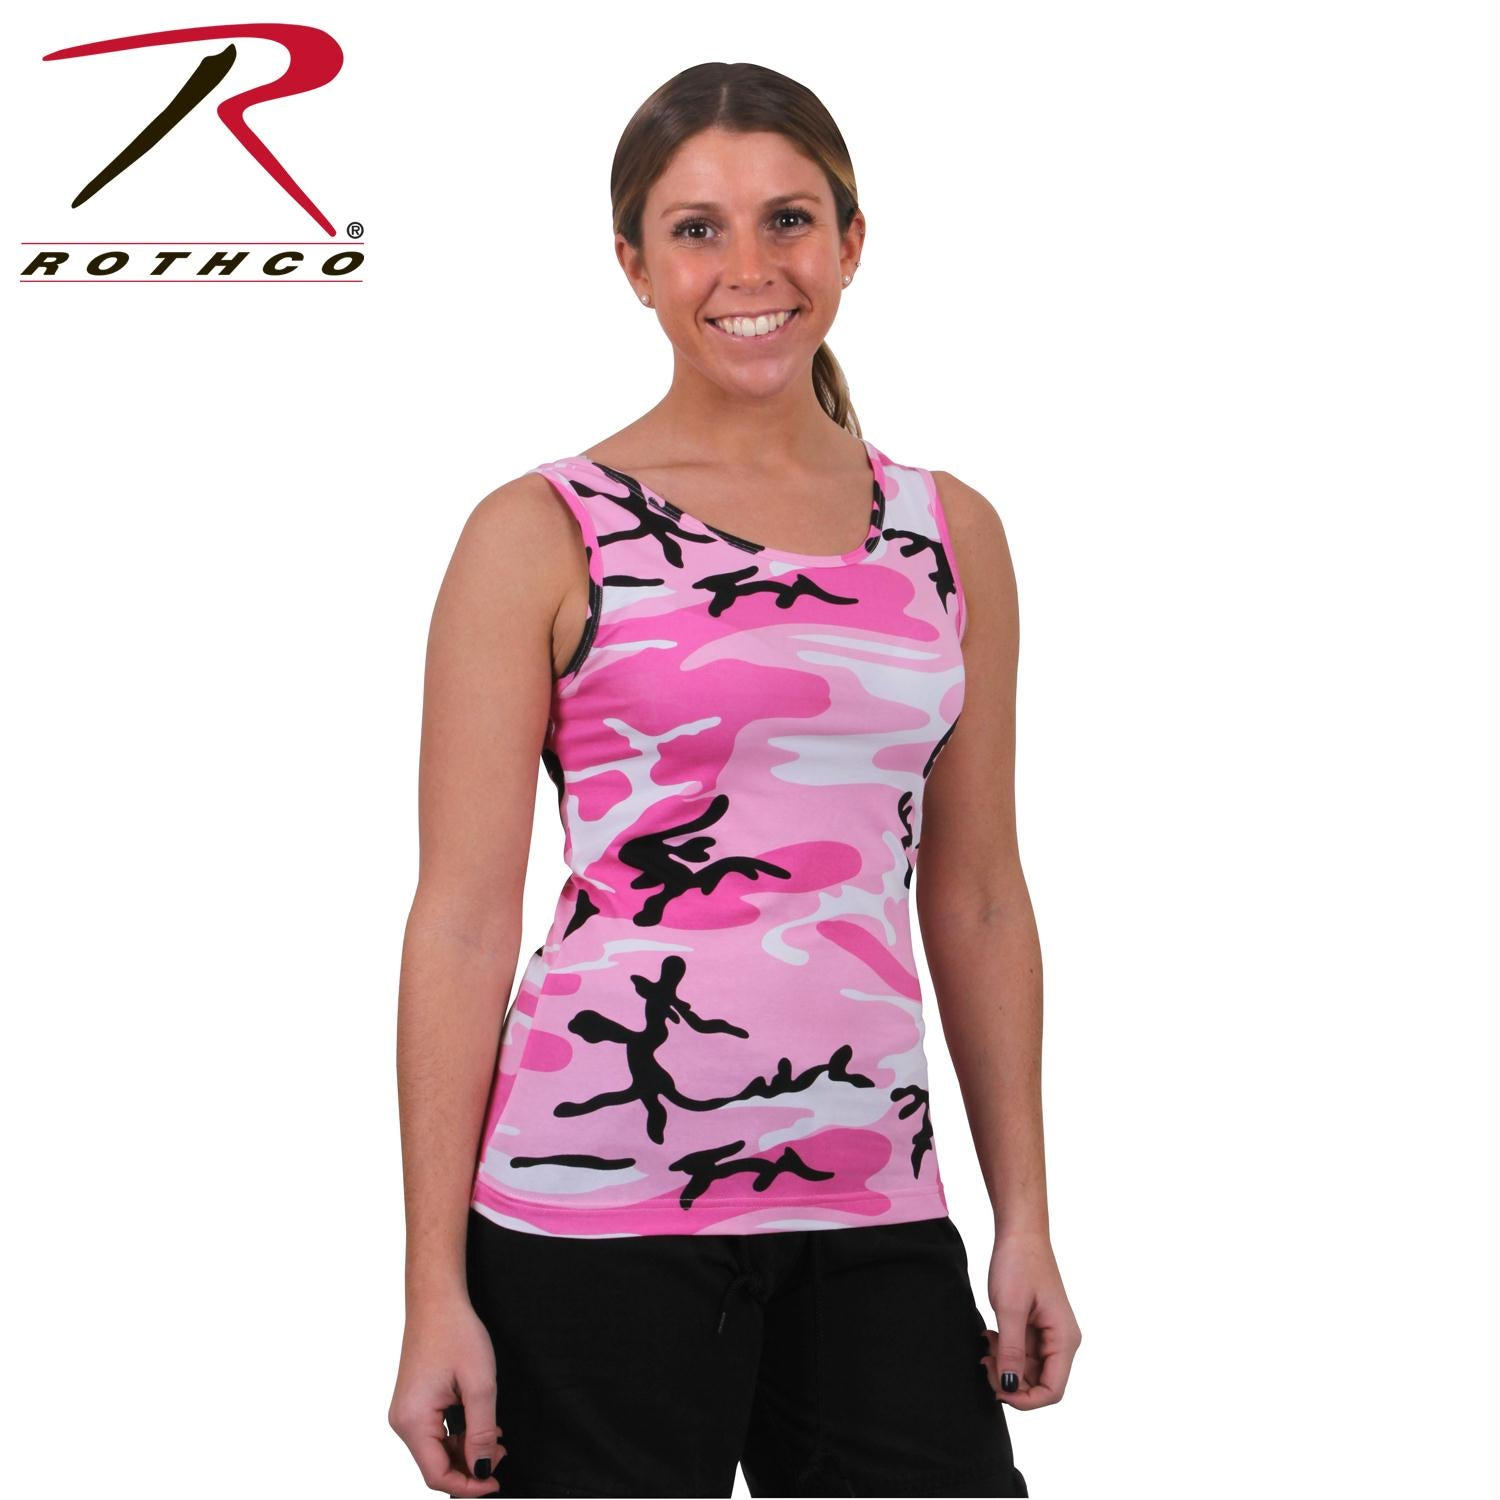 Rothco Womens Camo Stretch Tank Top - Pink Camo / S